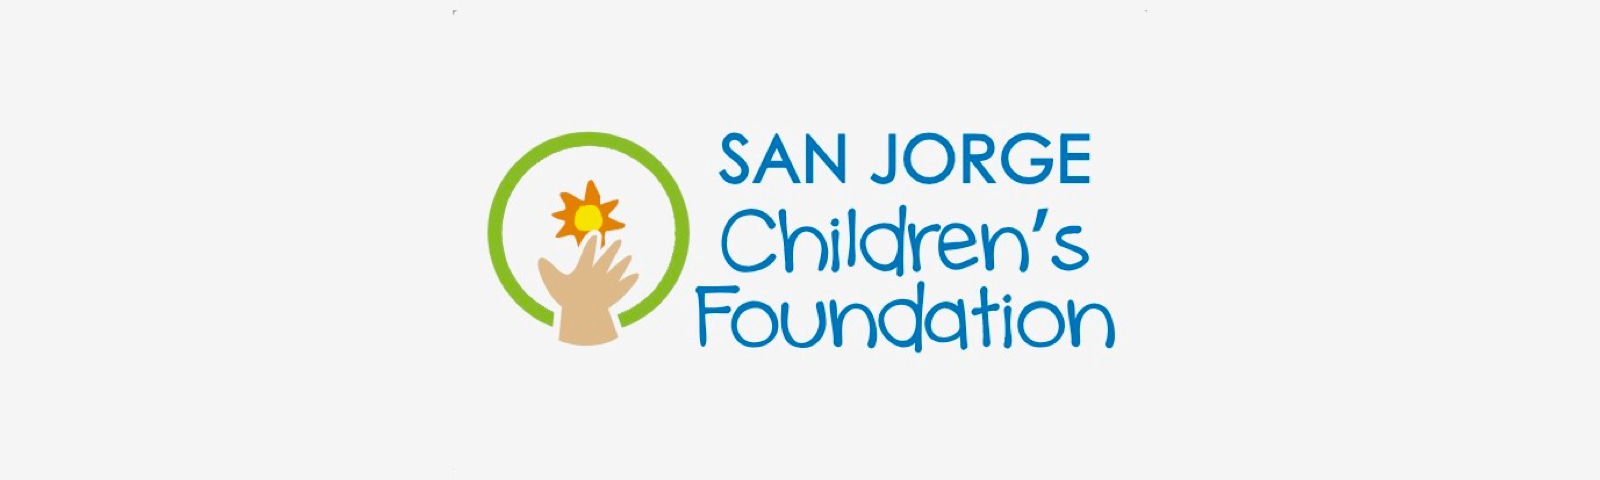 san jorge children's foundation